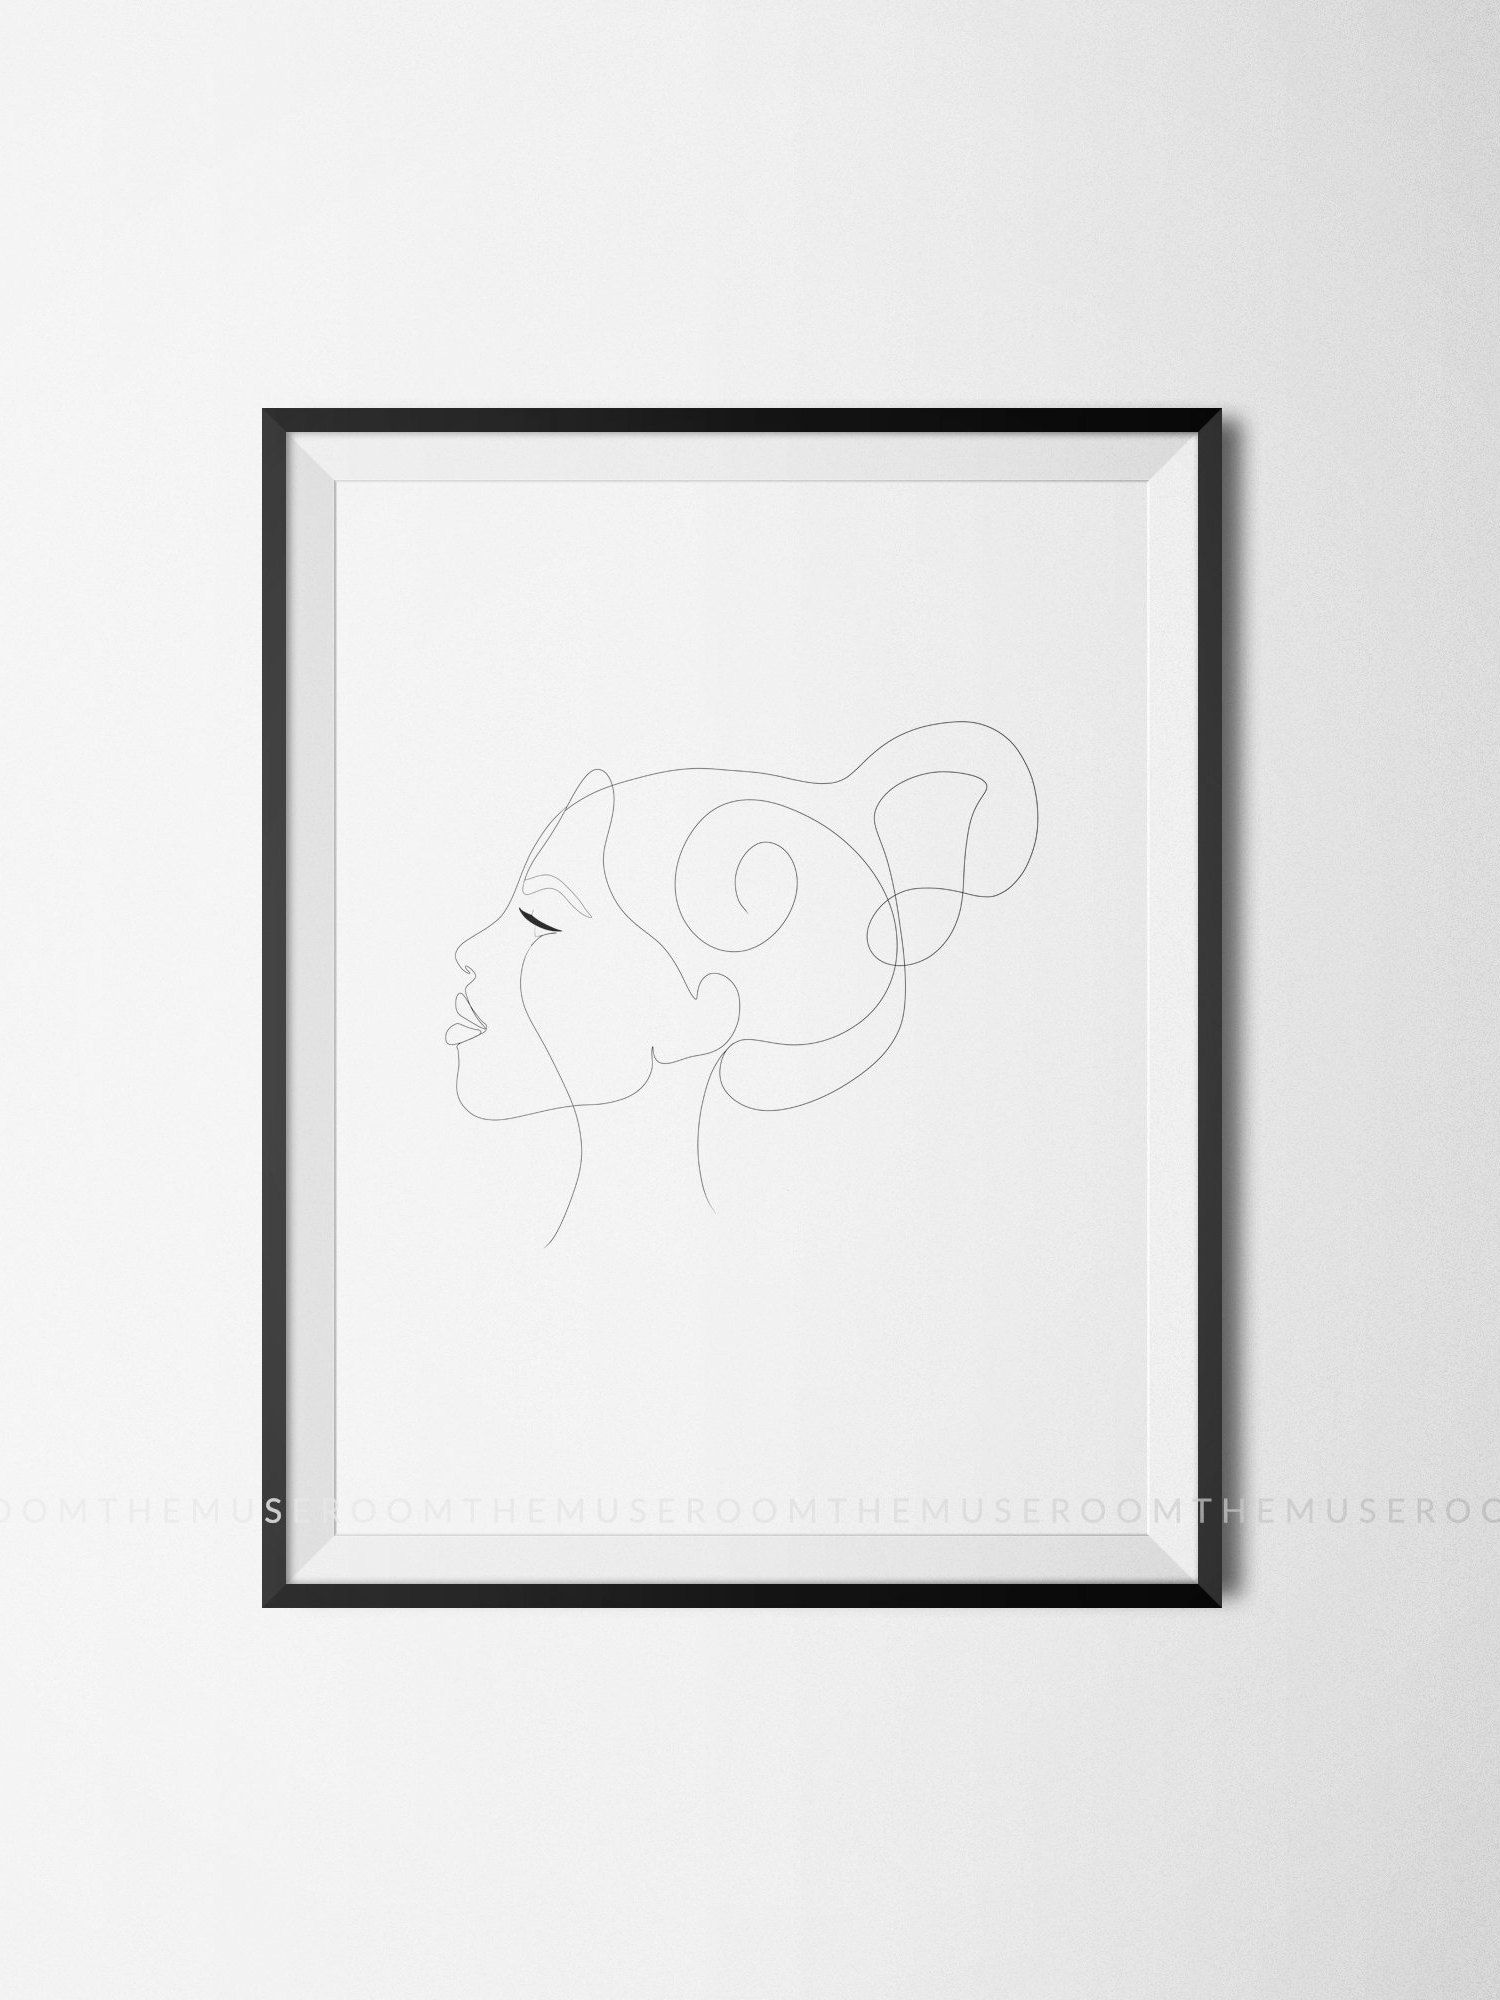 Line Drawing Poster, Single Line Drawing, Single Line Print, Abstract Line Art, Minimal Face Print, Side Profile Print, Hairstyle Print -   8 hairstyles Drawing profile ideas